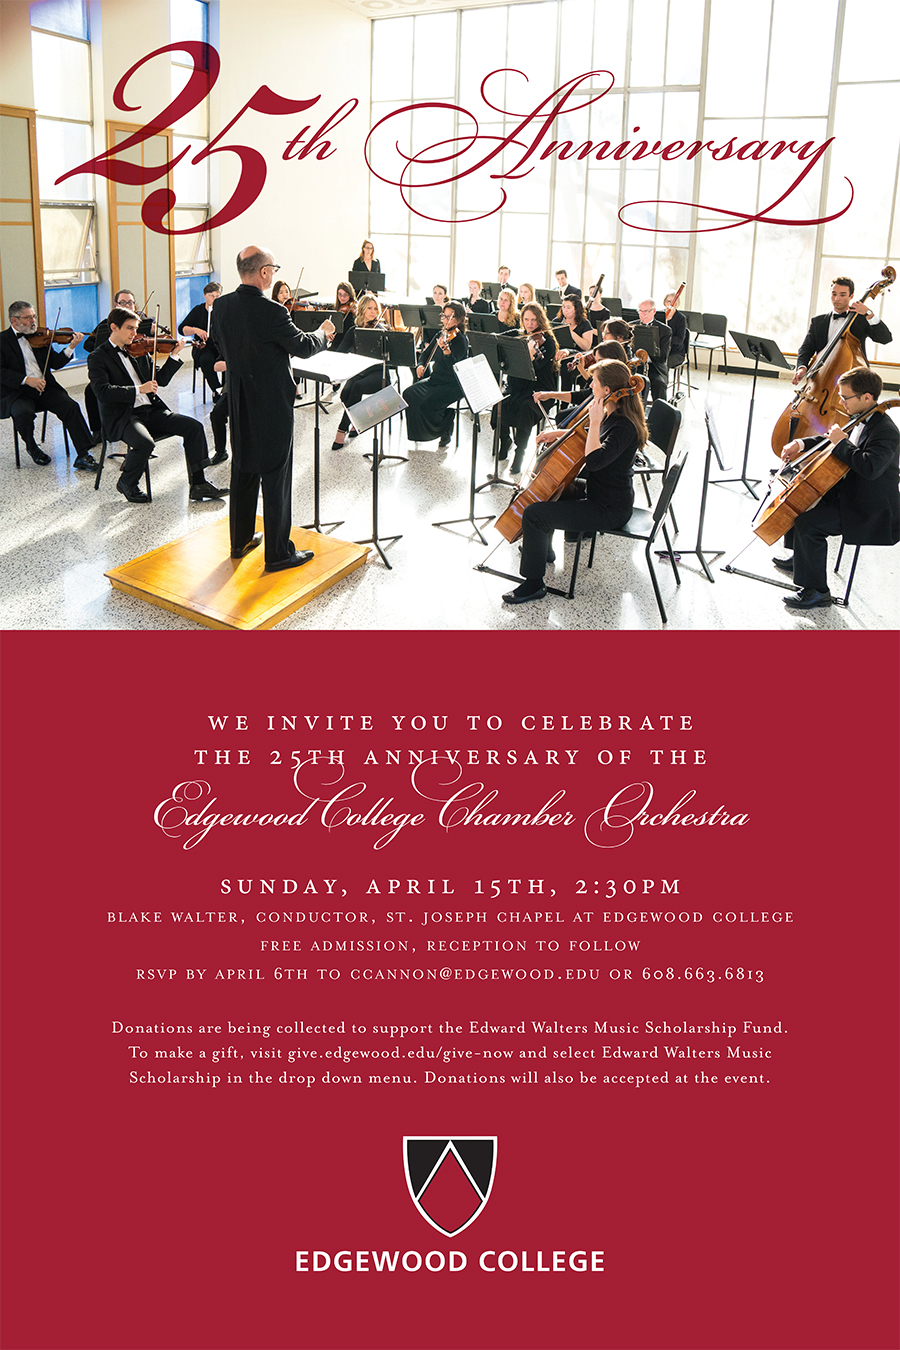 25th Anniversary Concert of Edgewood Chamber Orchestra Poster